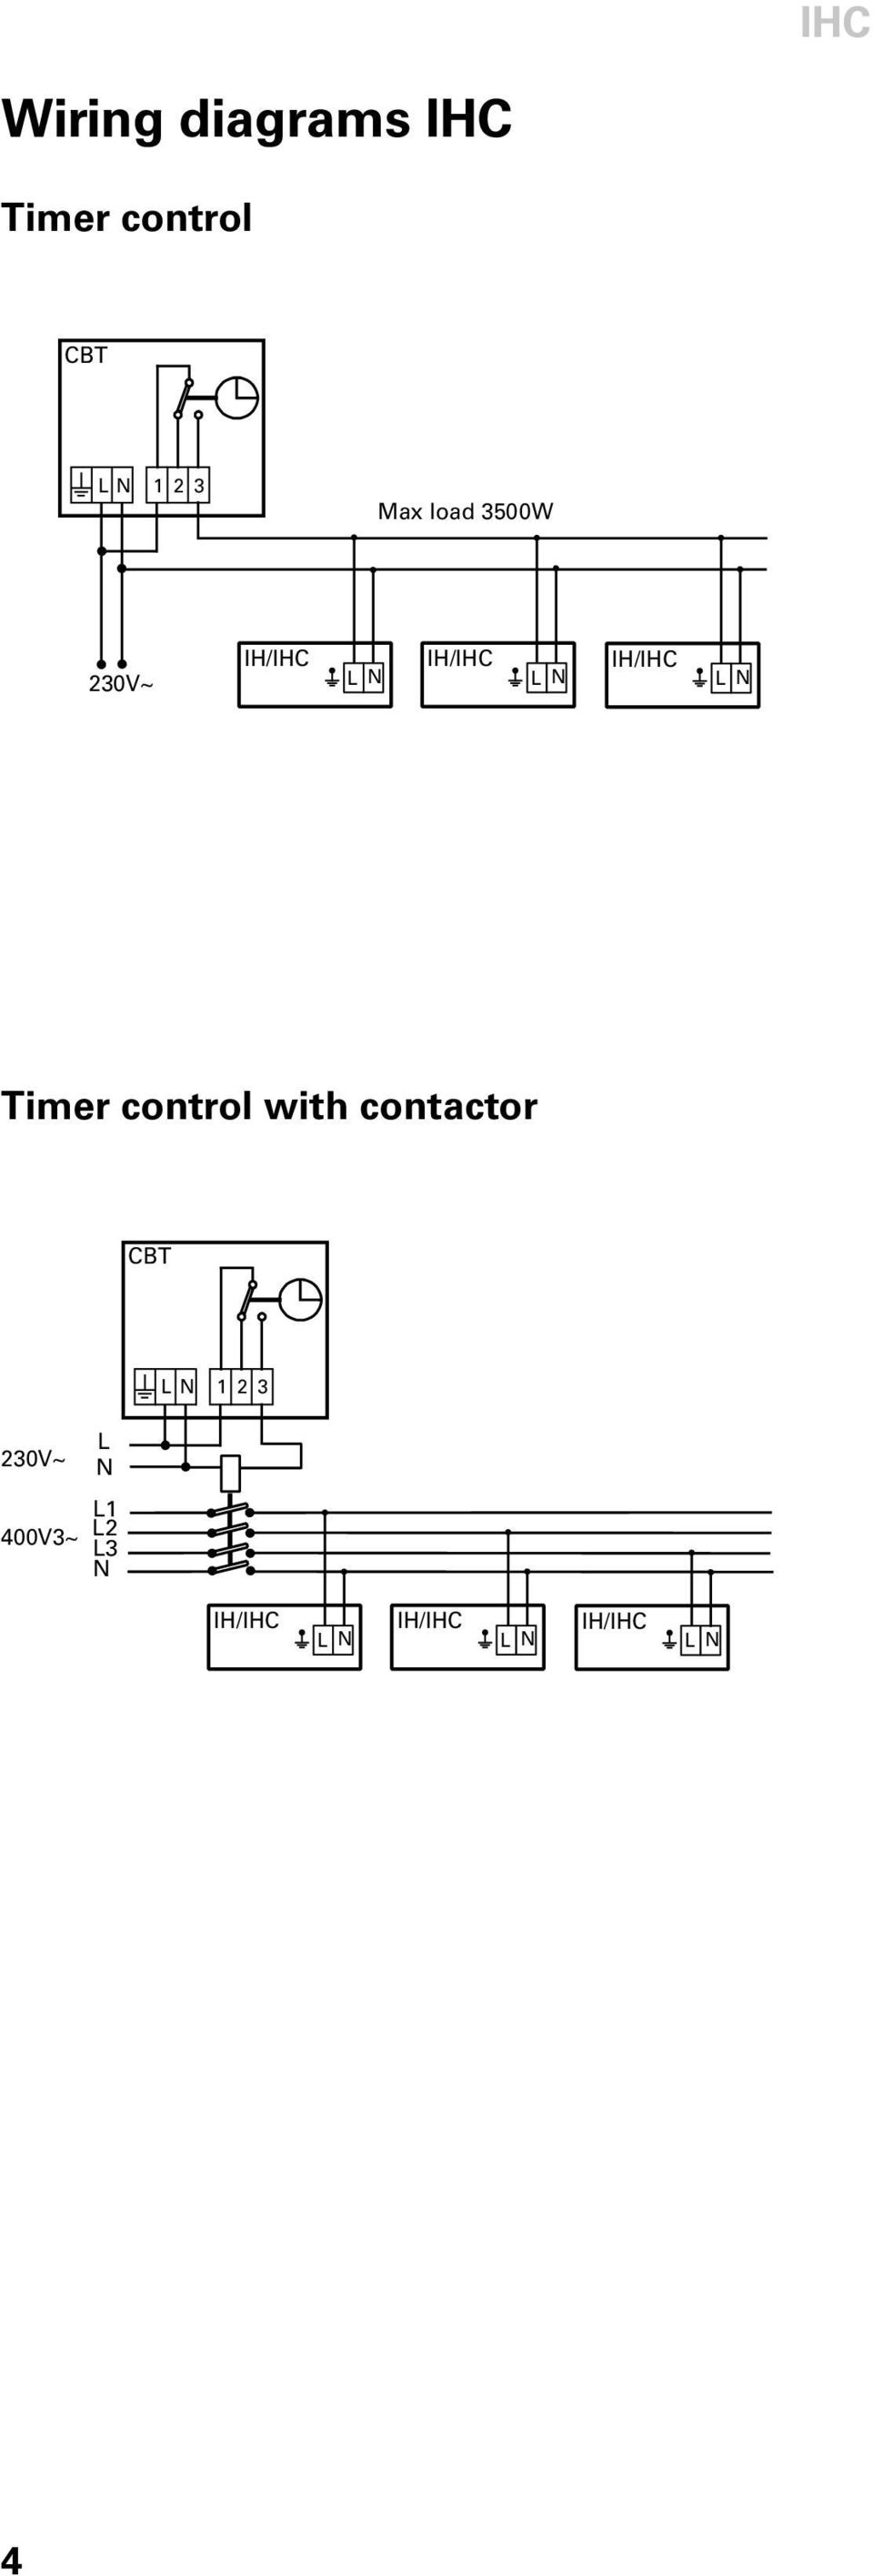 Timer control with contactor CBT